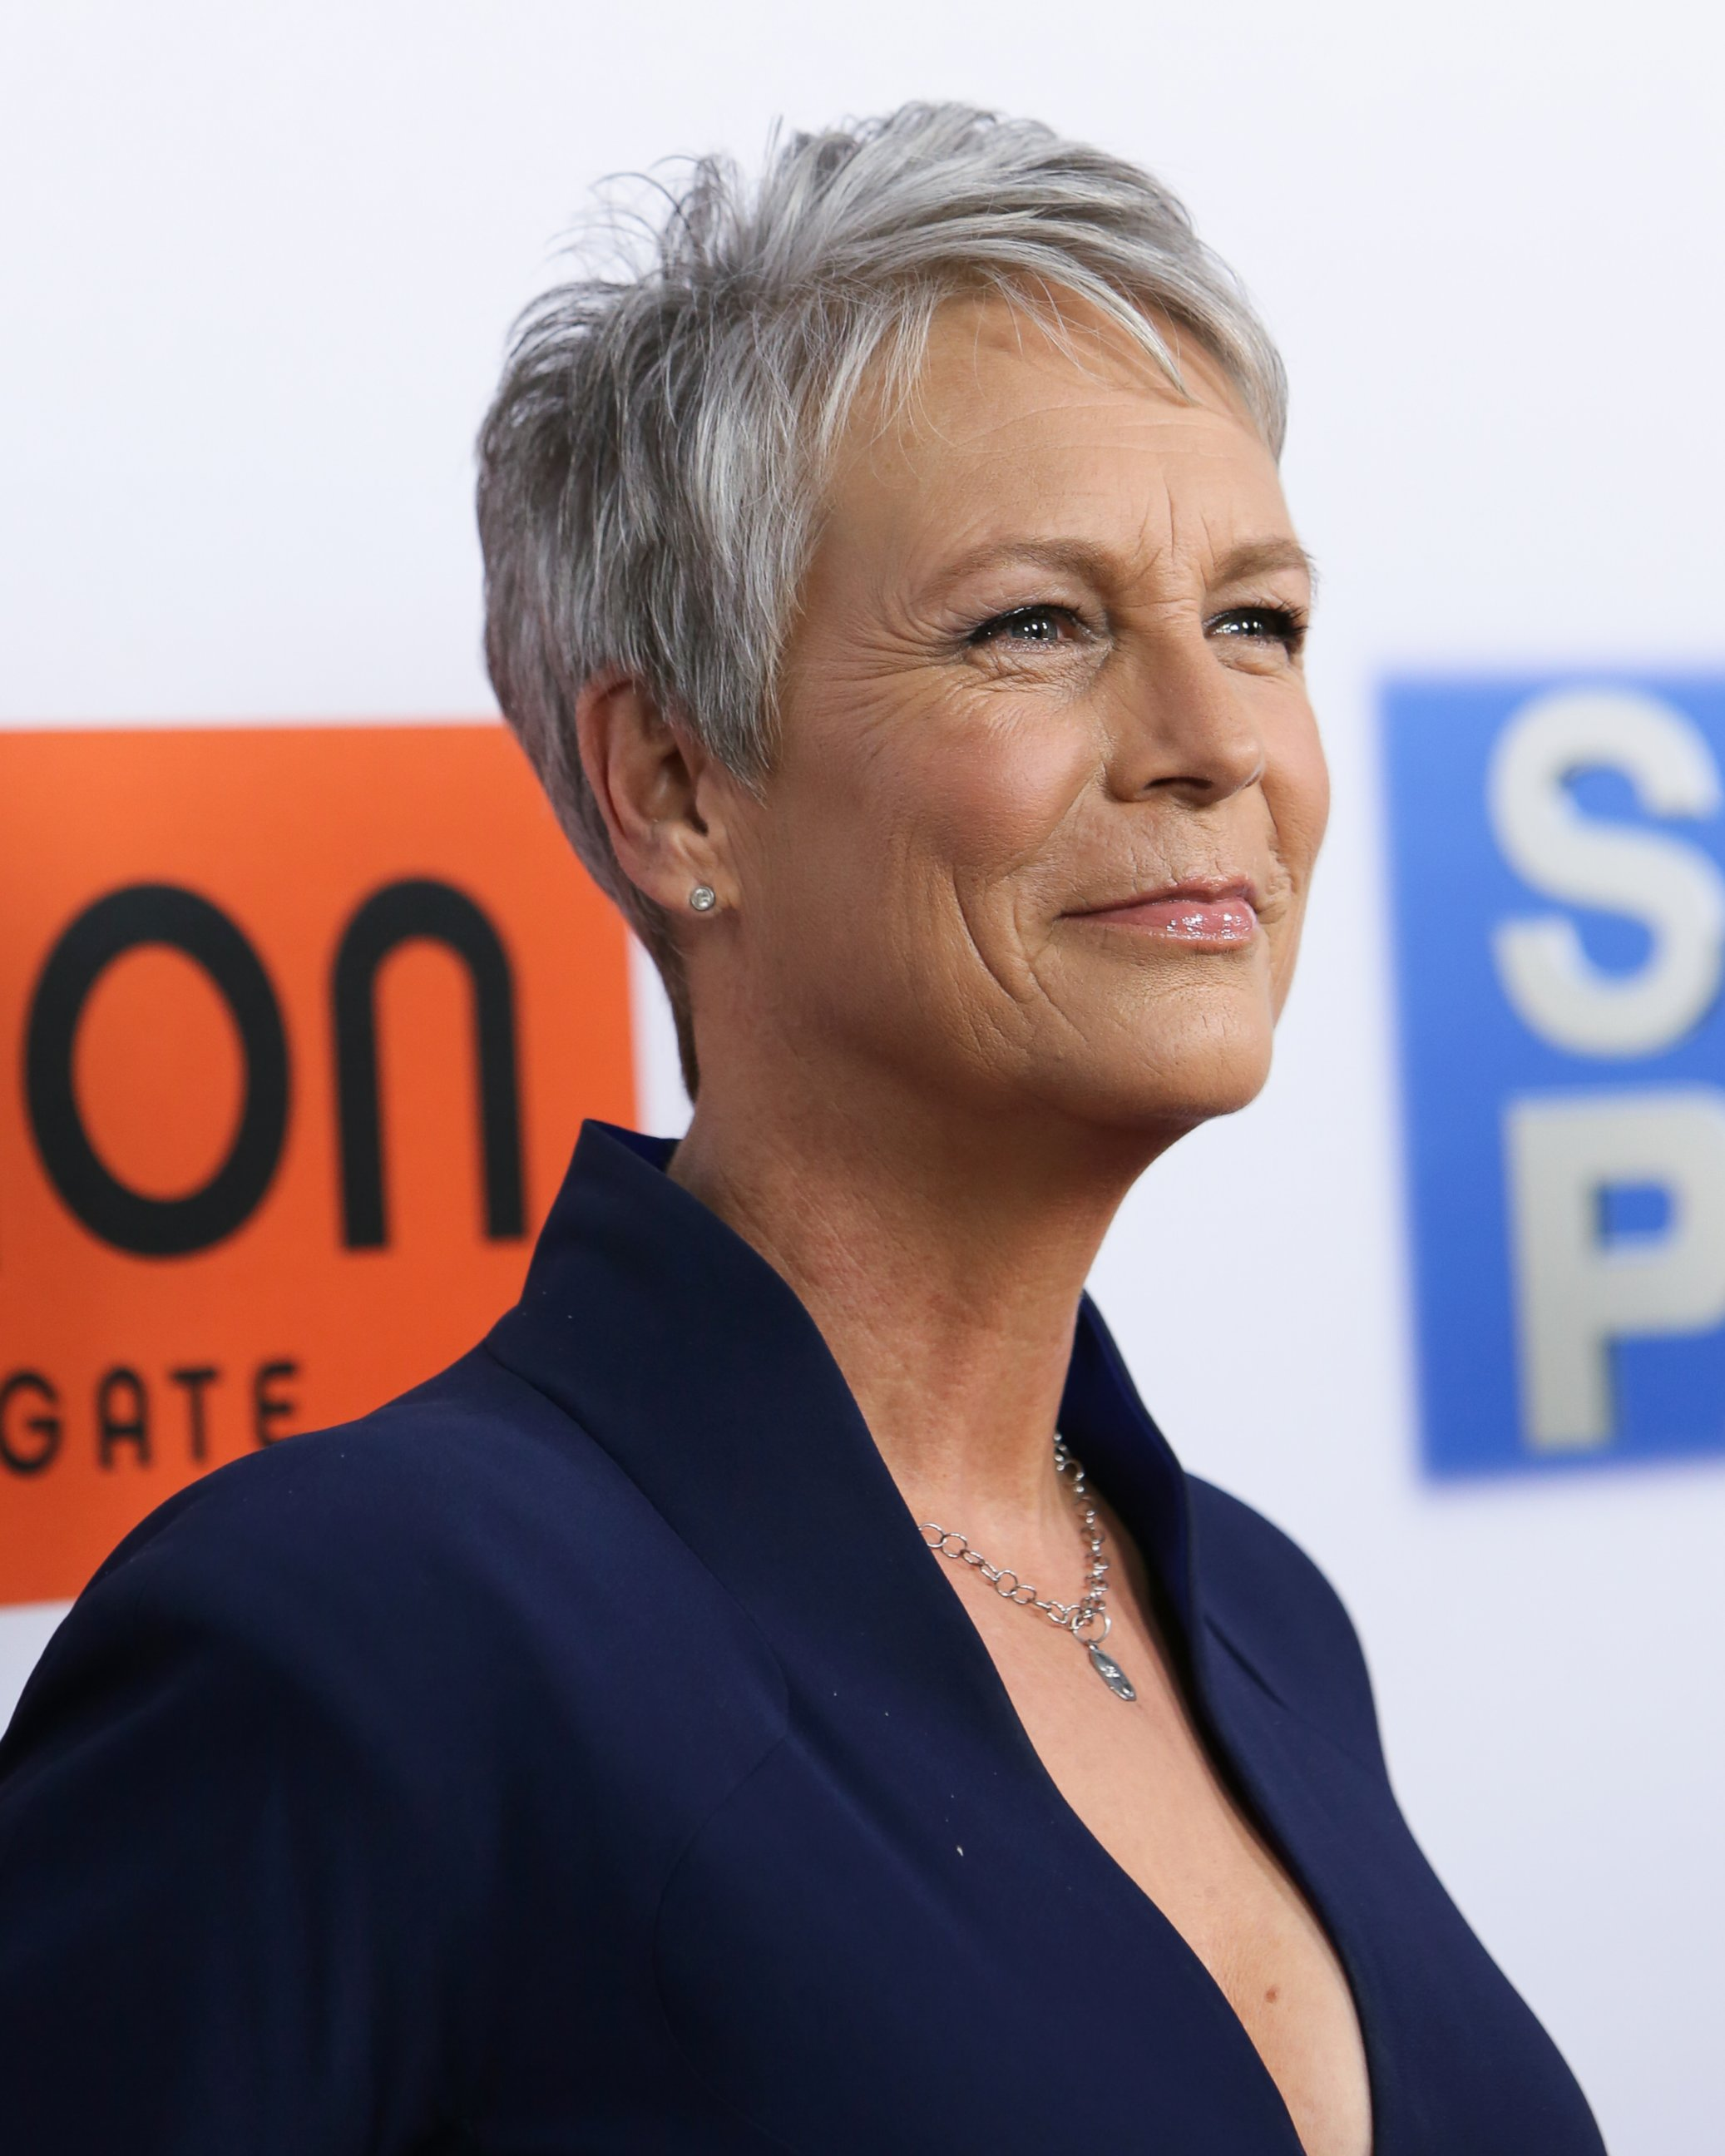 jamie lee curtis travoltajamie lee curtis 80s, jamie lee curtis john travolta, jamie lee curtis 2016, jamie lee curtis my girl, jamie lee curtis 1978, jamie lee curtis travolta, jamie lee curtis silicon, jamie lee curtis vk, jamie lee curtis 2017, jamie lee curtis wiki, jamie lee curtis films, jamie lee curtis aerobics, jamie lee curtis mom, jamie lee curtis michael myers, jamie lee curtis and dan aykroyd movies, jamie lee curtis photos hot, jamie lee curtis wdw, jamie lee curtis arnold schwarz, jamie lee curtis zodiac sign, jamie lee curtis books